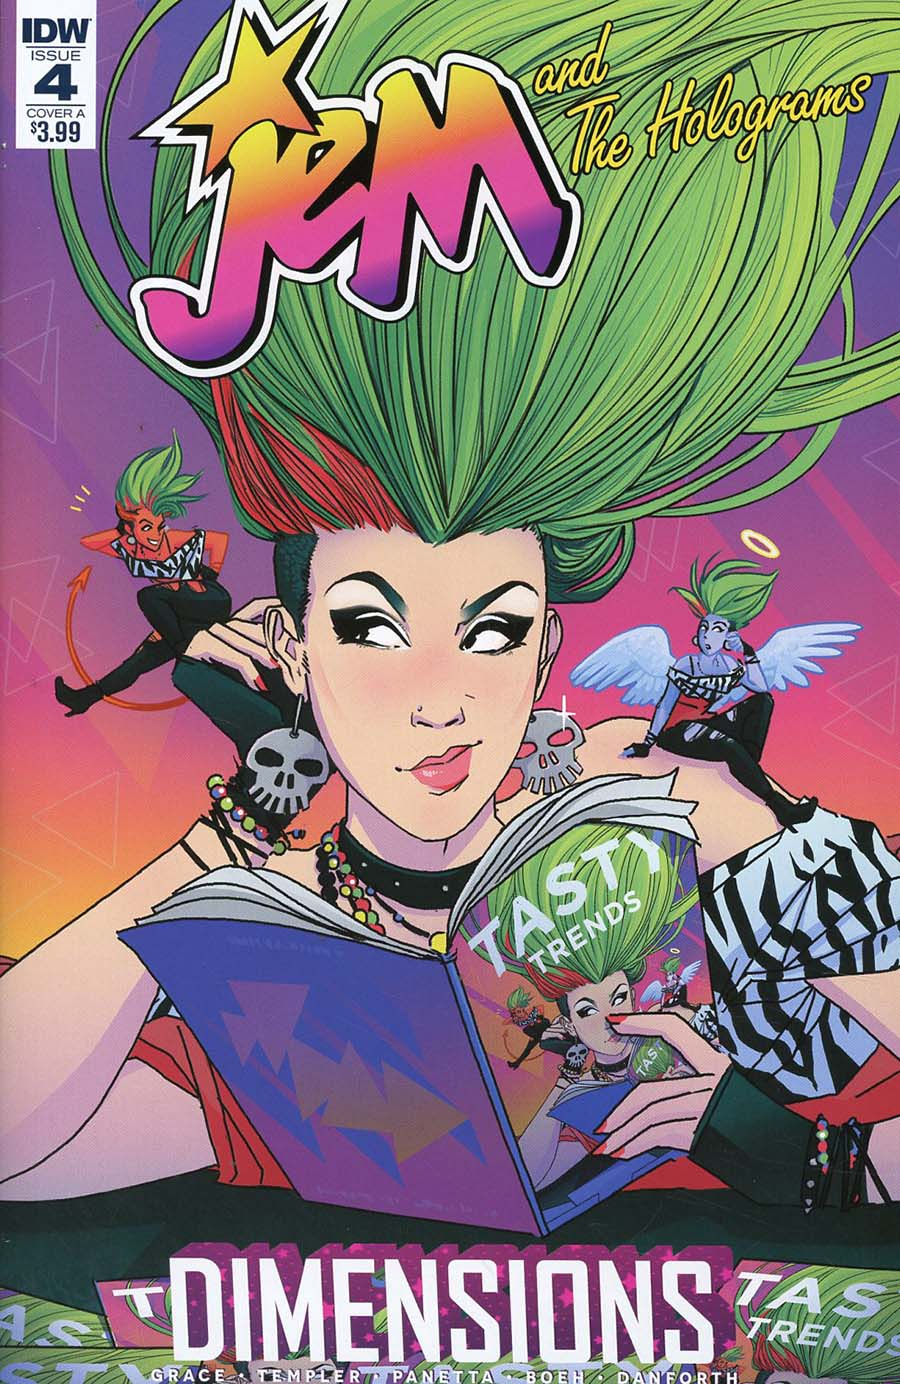 Jem And The Holograms Dimensions #4 Cover A Regular Abby Boeh Cover